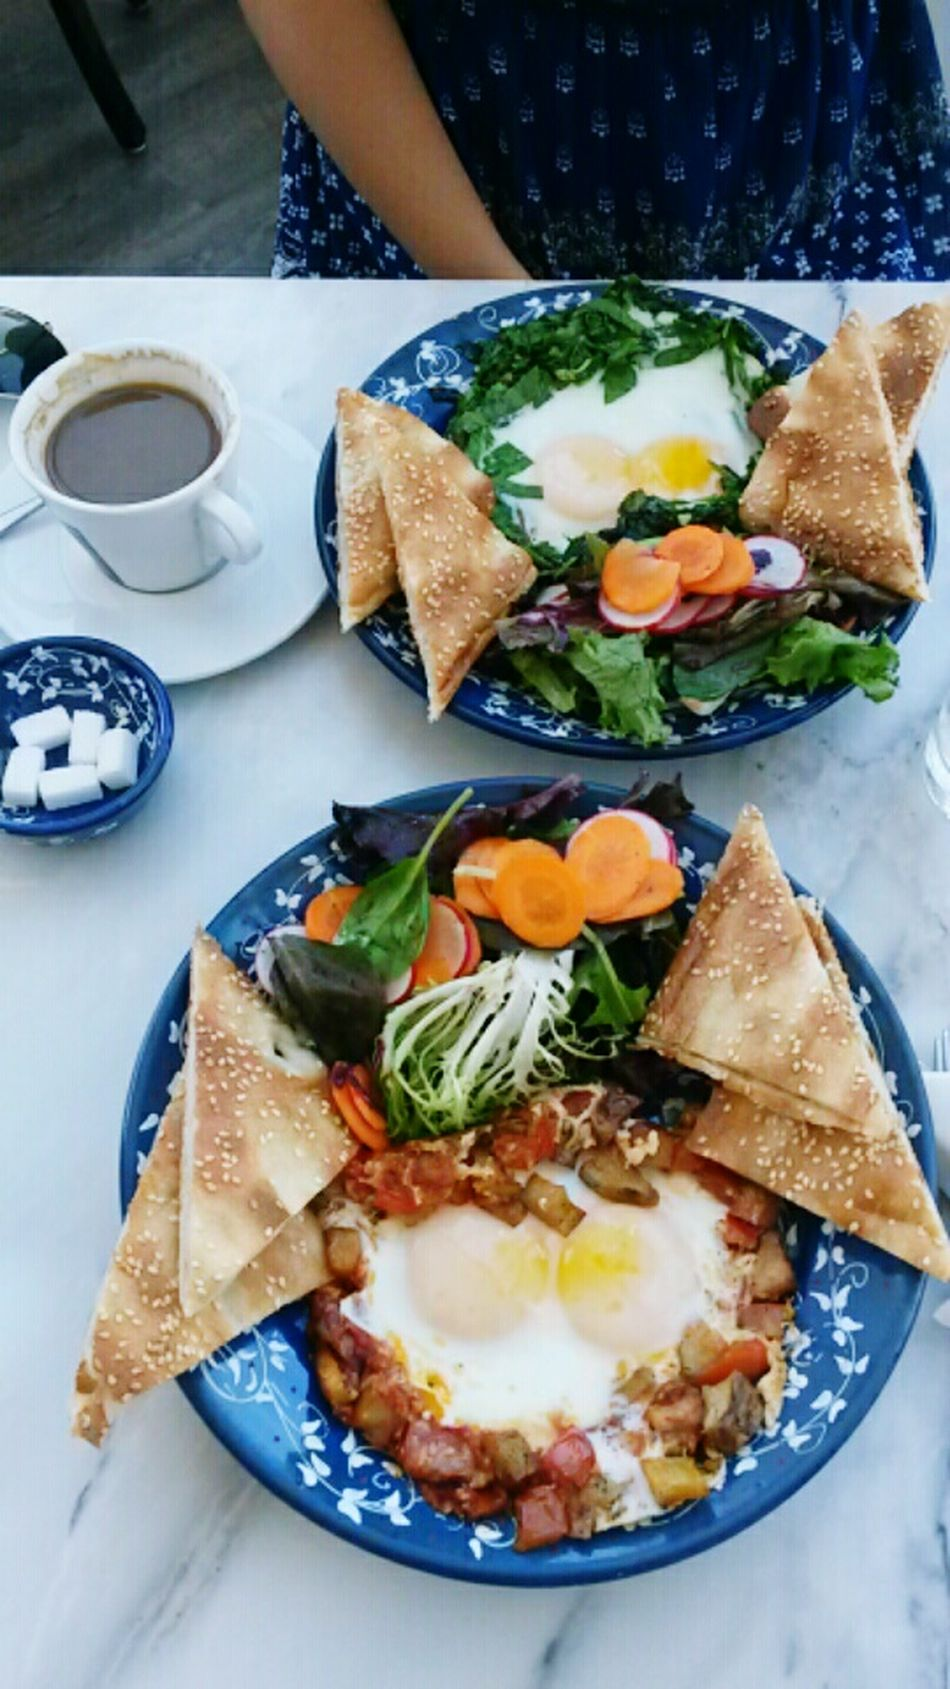 Persian Brunch Firstexperience Brunch Brunchtime Sundaybrunch Foodphotography YumYum Delicious Coffee Eggs Healthy Sugar Cubes Food SundayFunday The Essence Of Summer